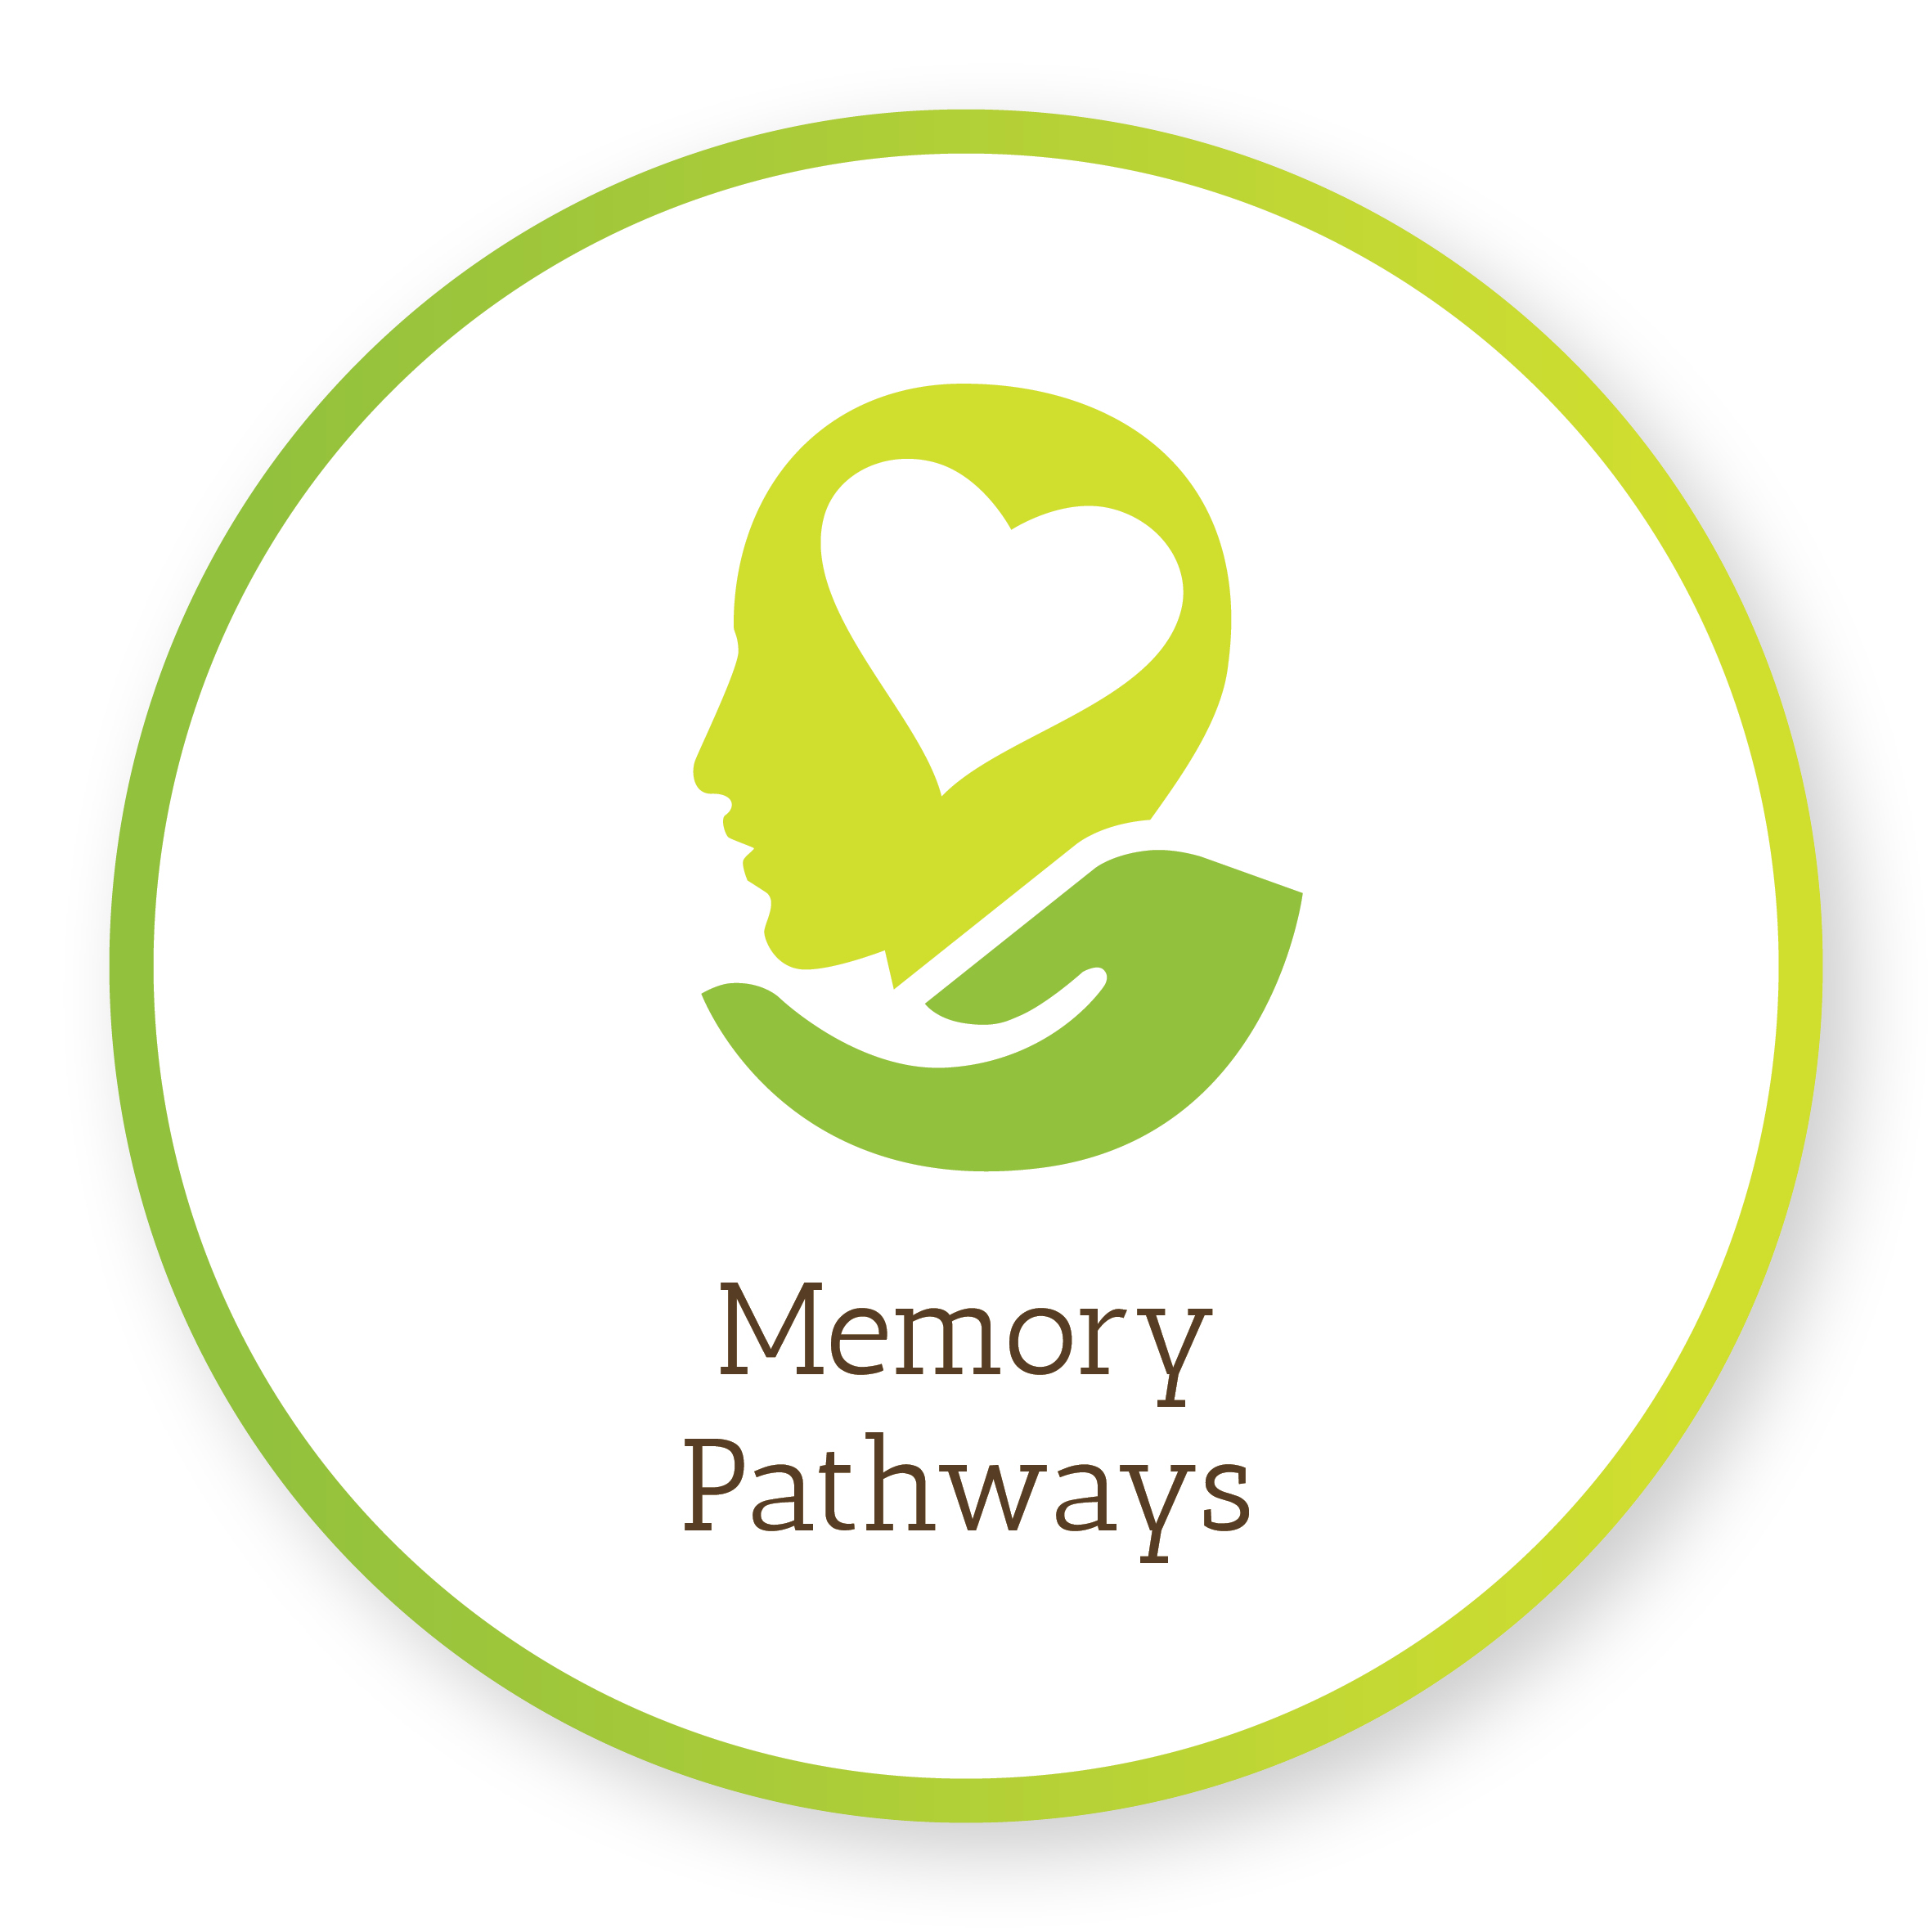 Memory Pathways